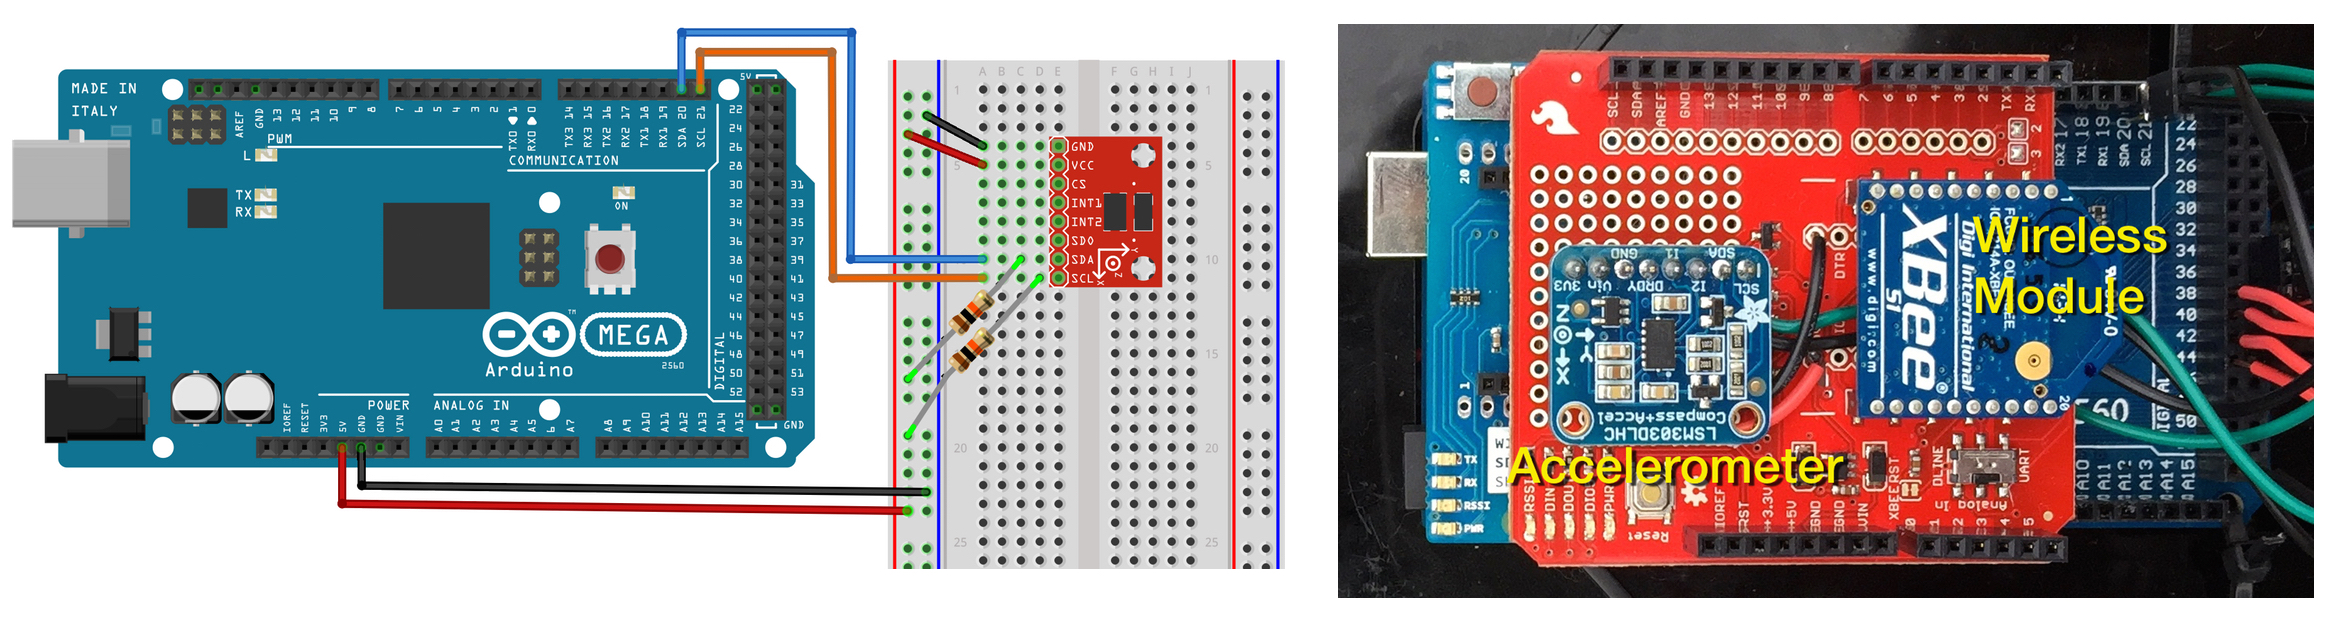 Accelerometer and XBee